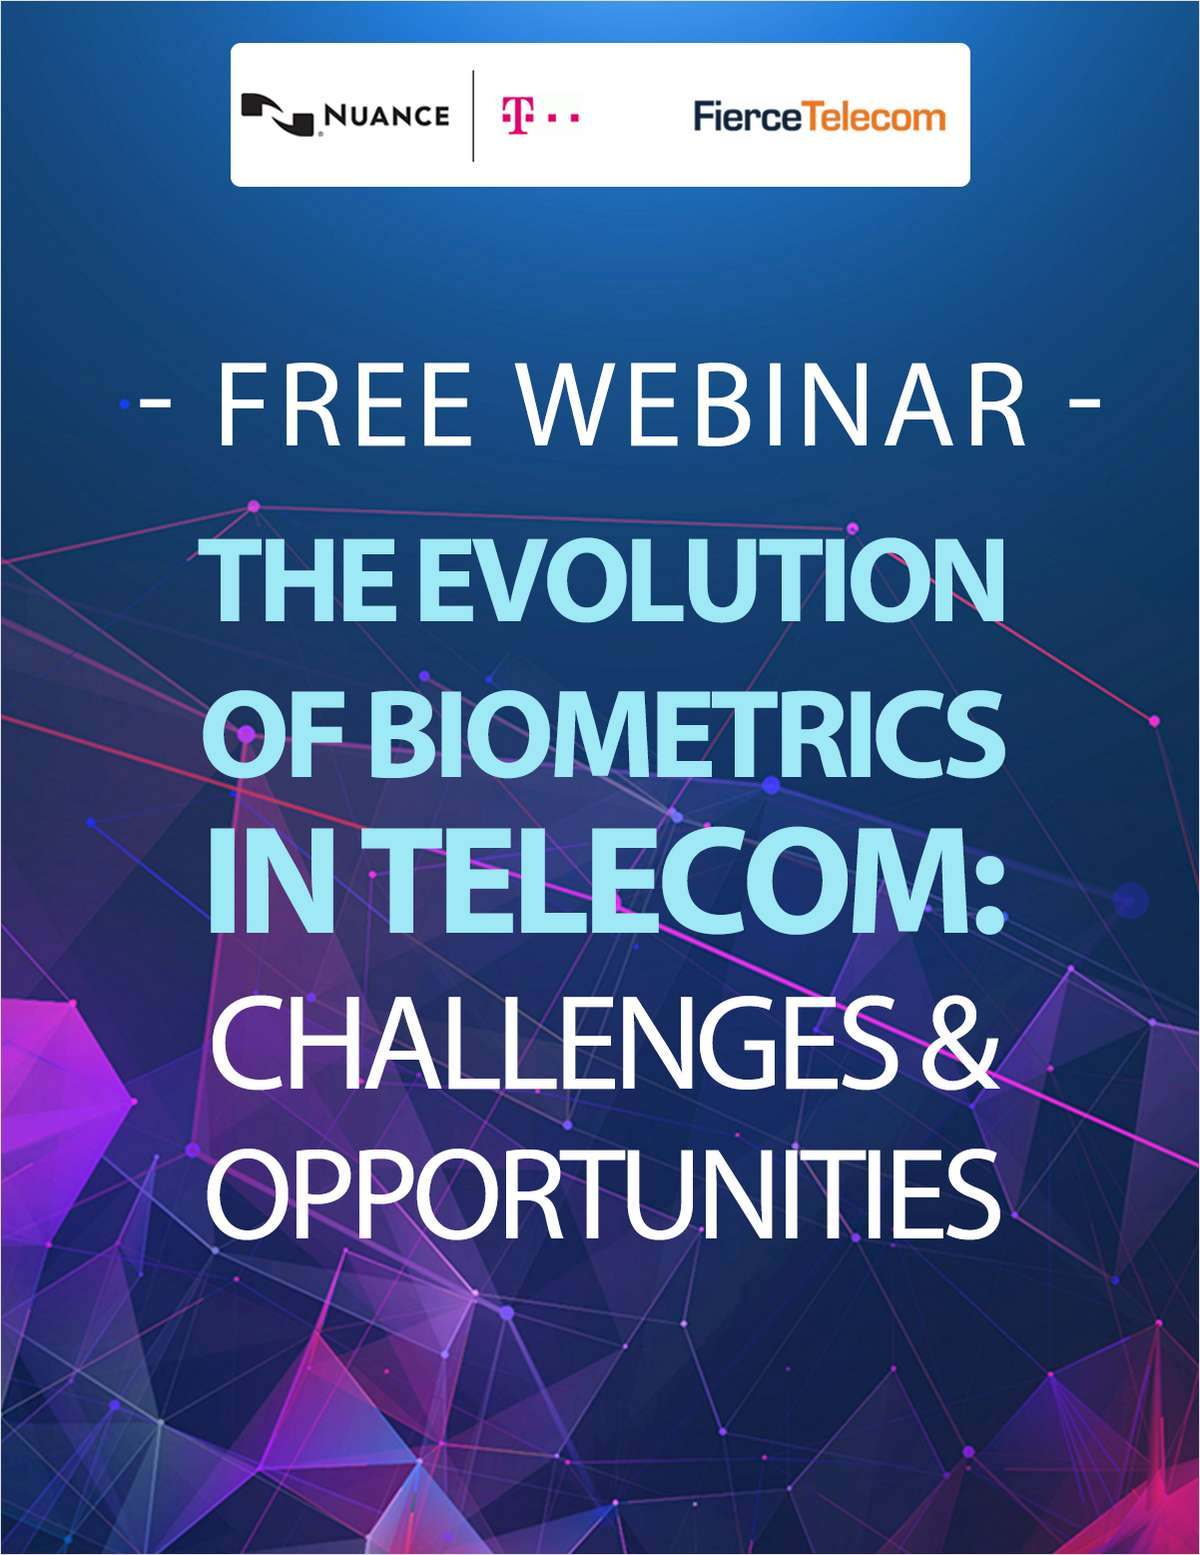 The Evolution of Biometrics in Telecom: Challenges and Opportunities